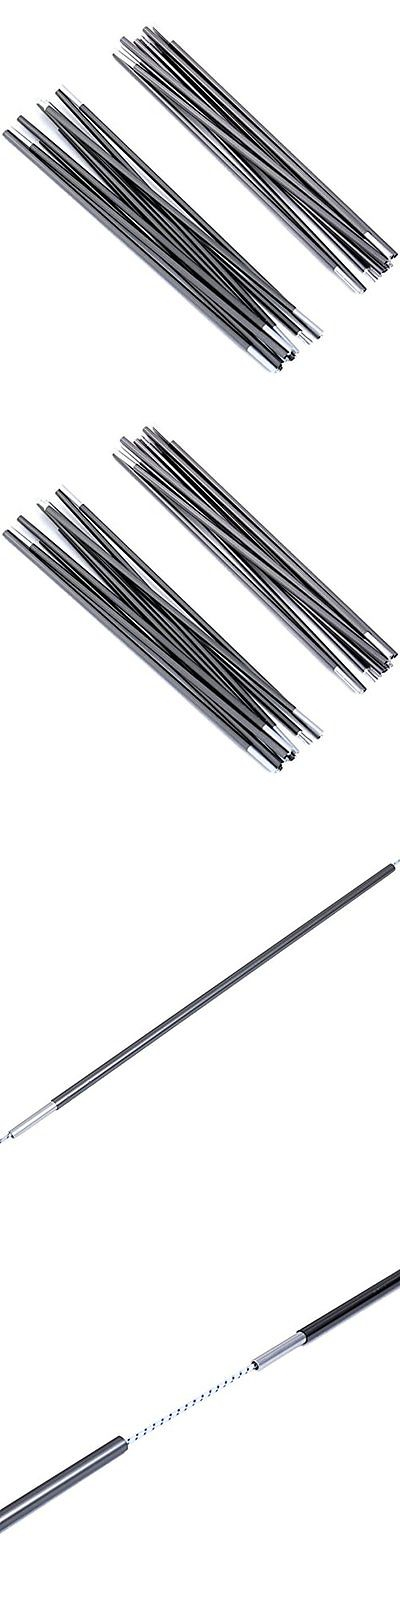 Tent and Canopy Accessories 36120 Weanas Aluminum Rod Tent Pole Replacement Accessories (20 Ft  sc 1 st  Pinterest & Tent and Canopy Accessories 36120: Weanas Aluminum Rod Tent Pole ...